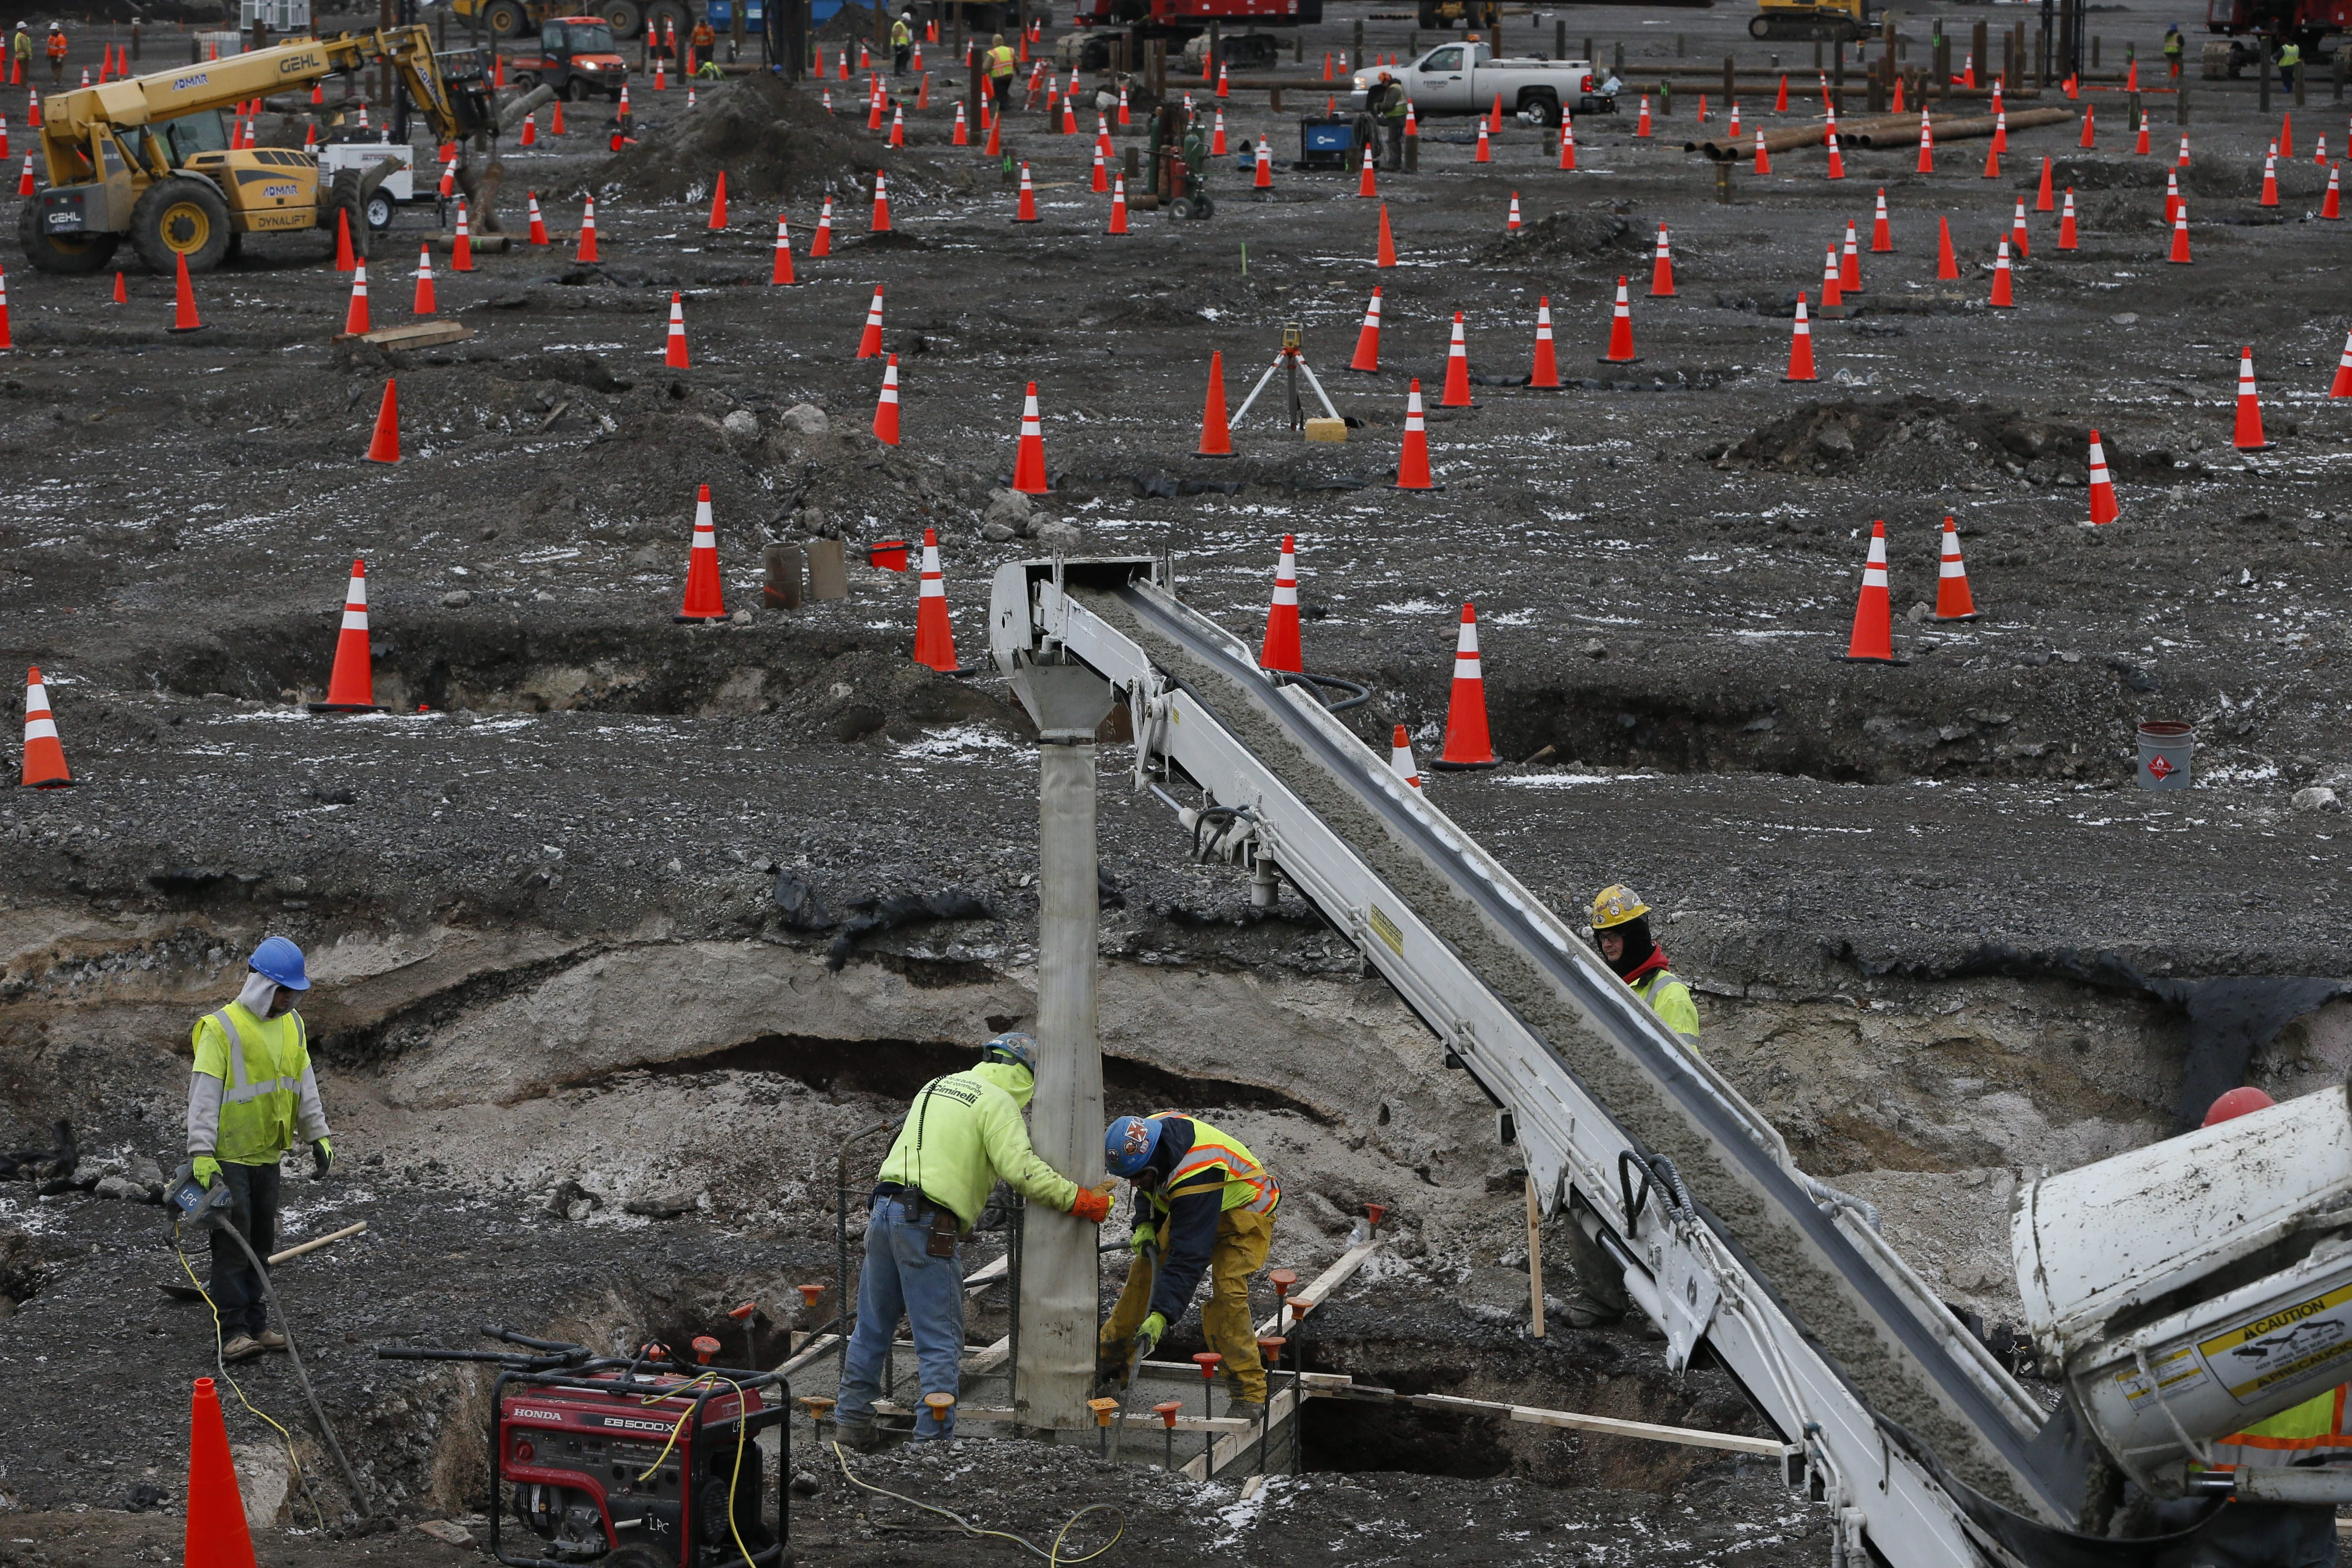 Workers pour a concrete cap over a piling at the RiverBend site Thursday as crews drill and insert pilings into the bedrock 70 feet below ground for the foundation of the SolarCity manufacturing facility that will be built there. Photos by Derek Gee/Buffalo News